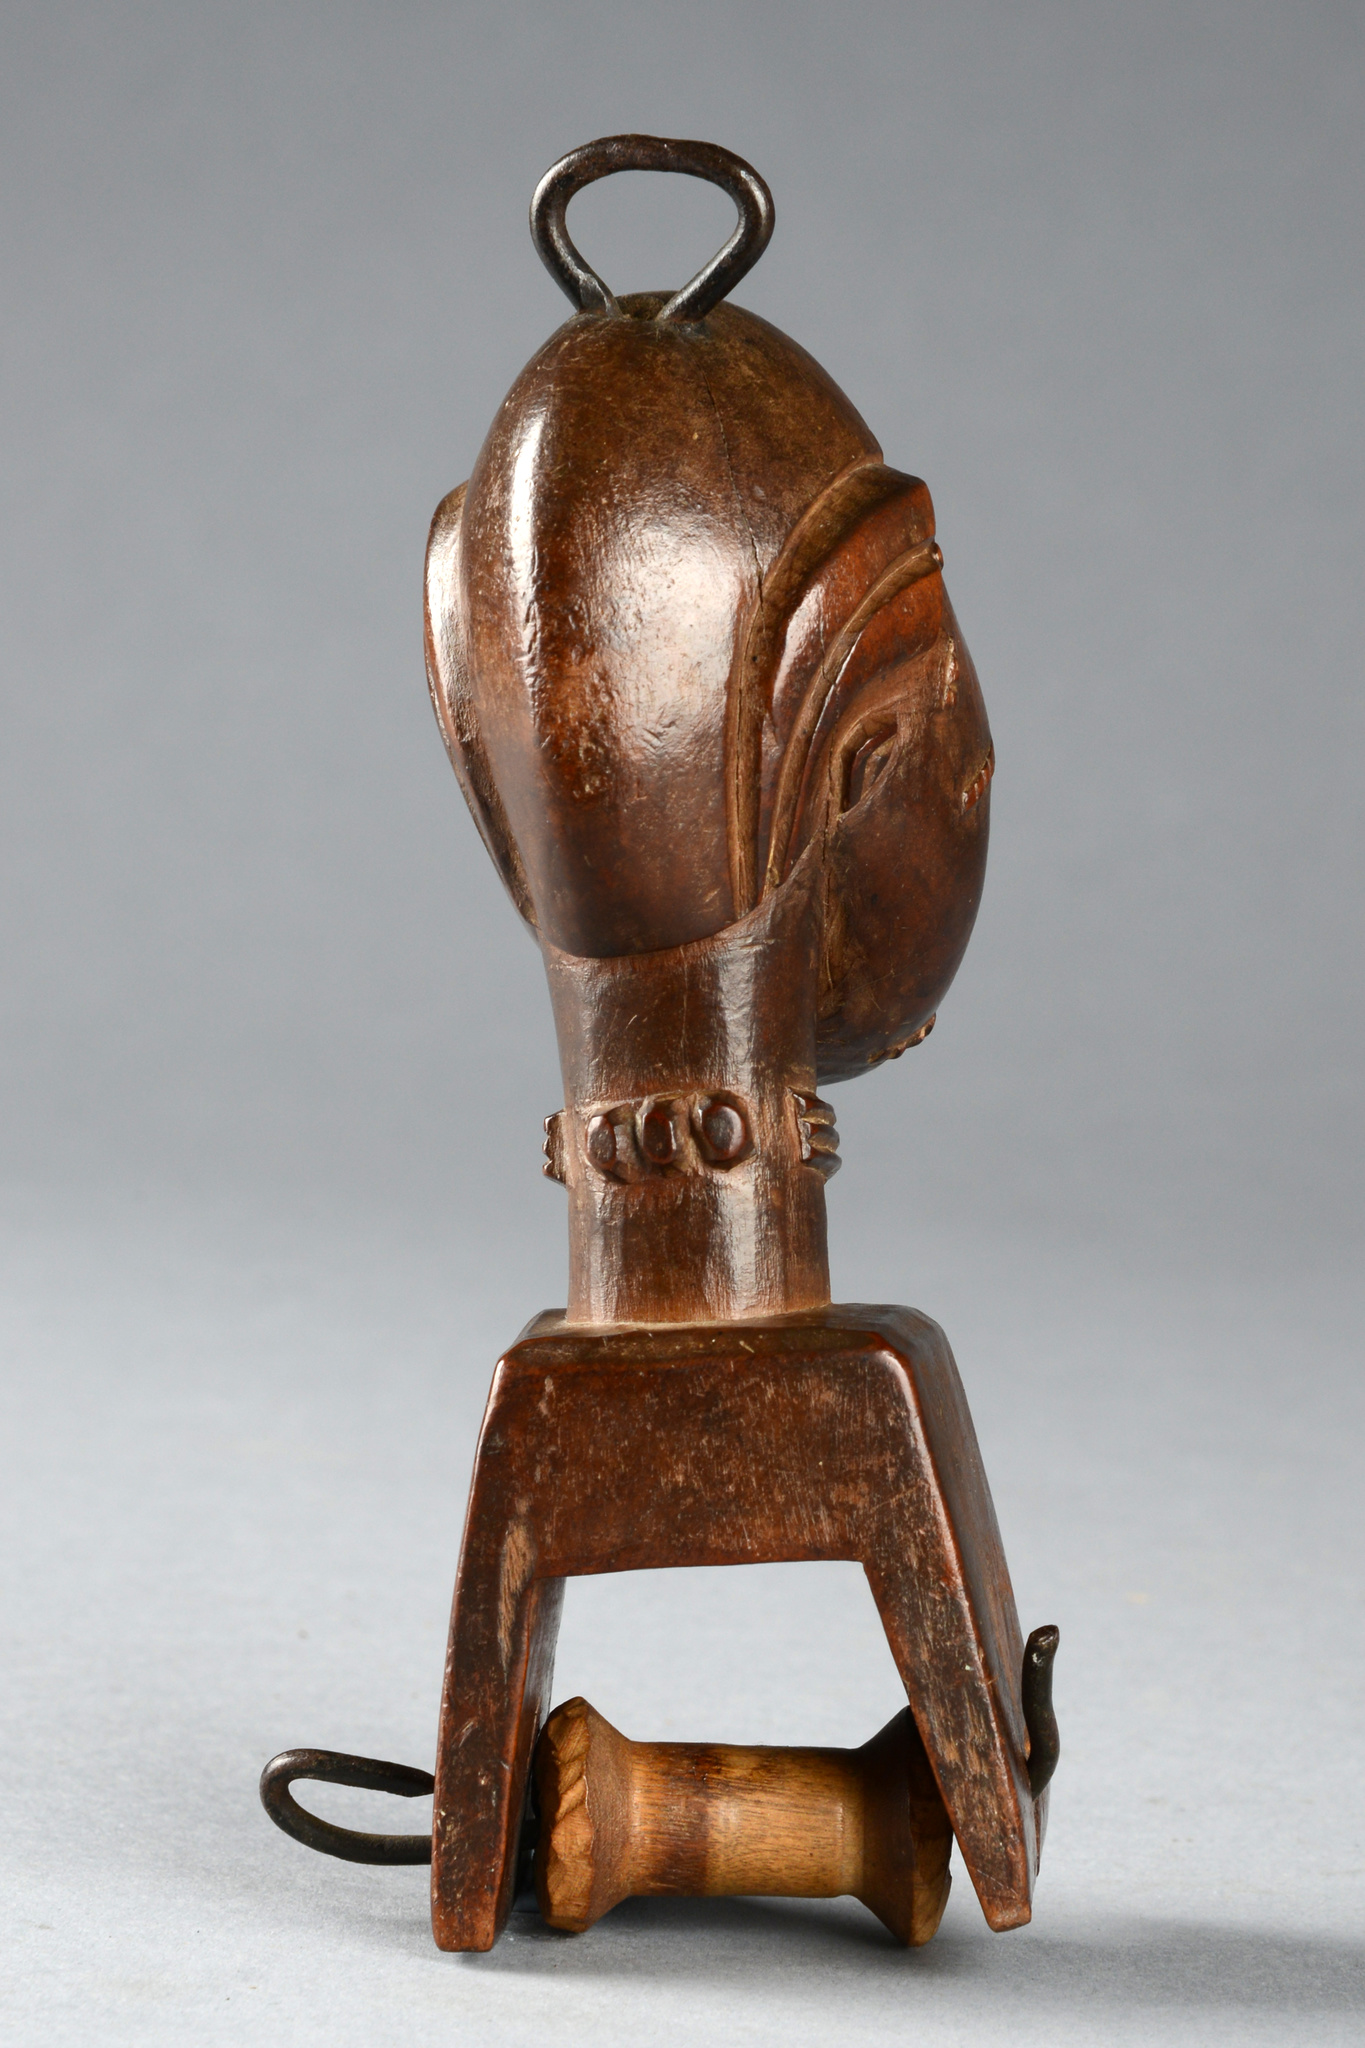 Heddle pulley with anthropomorphic head